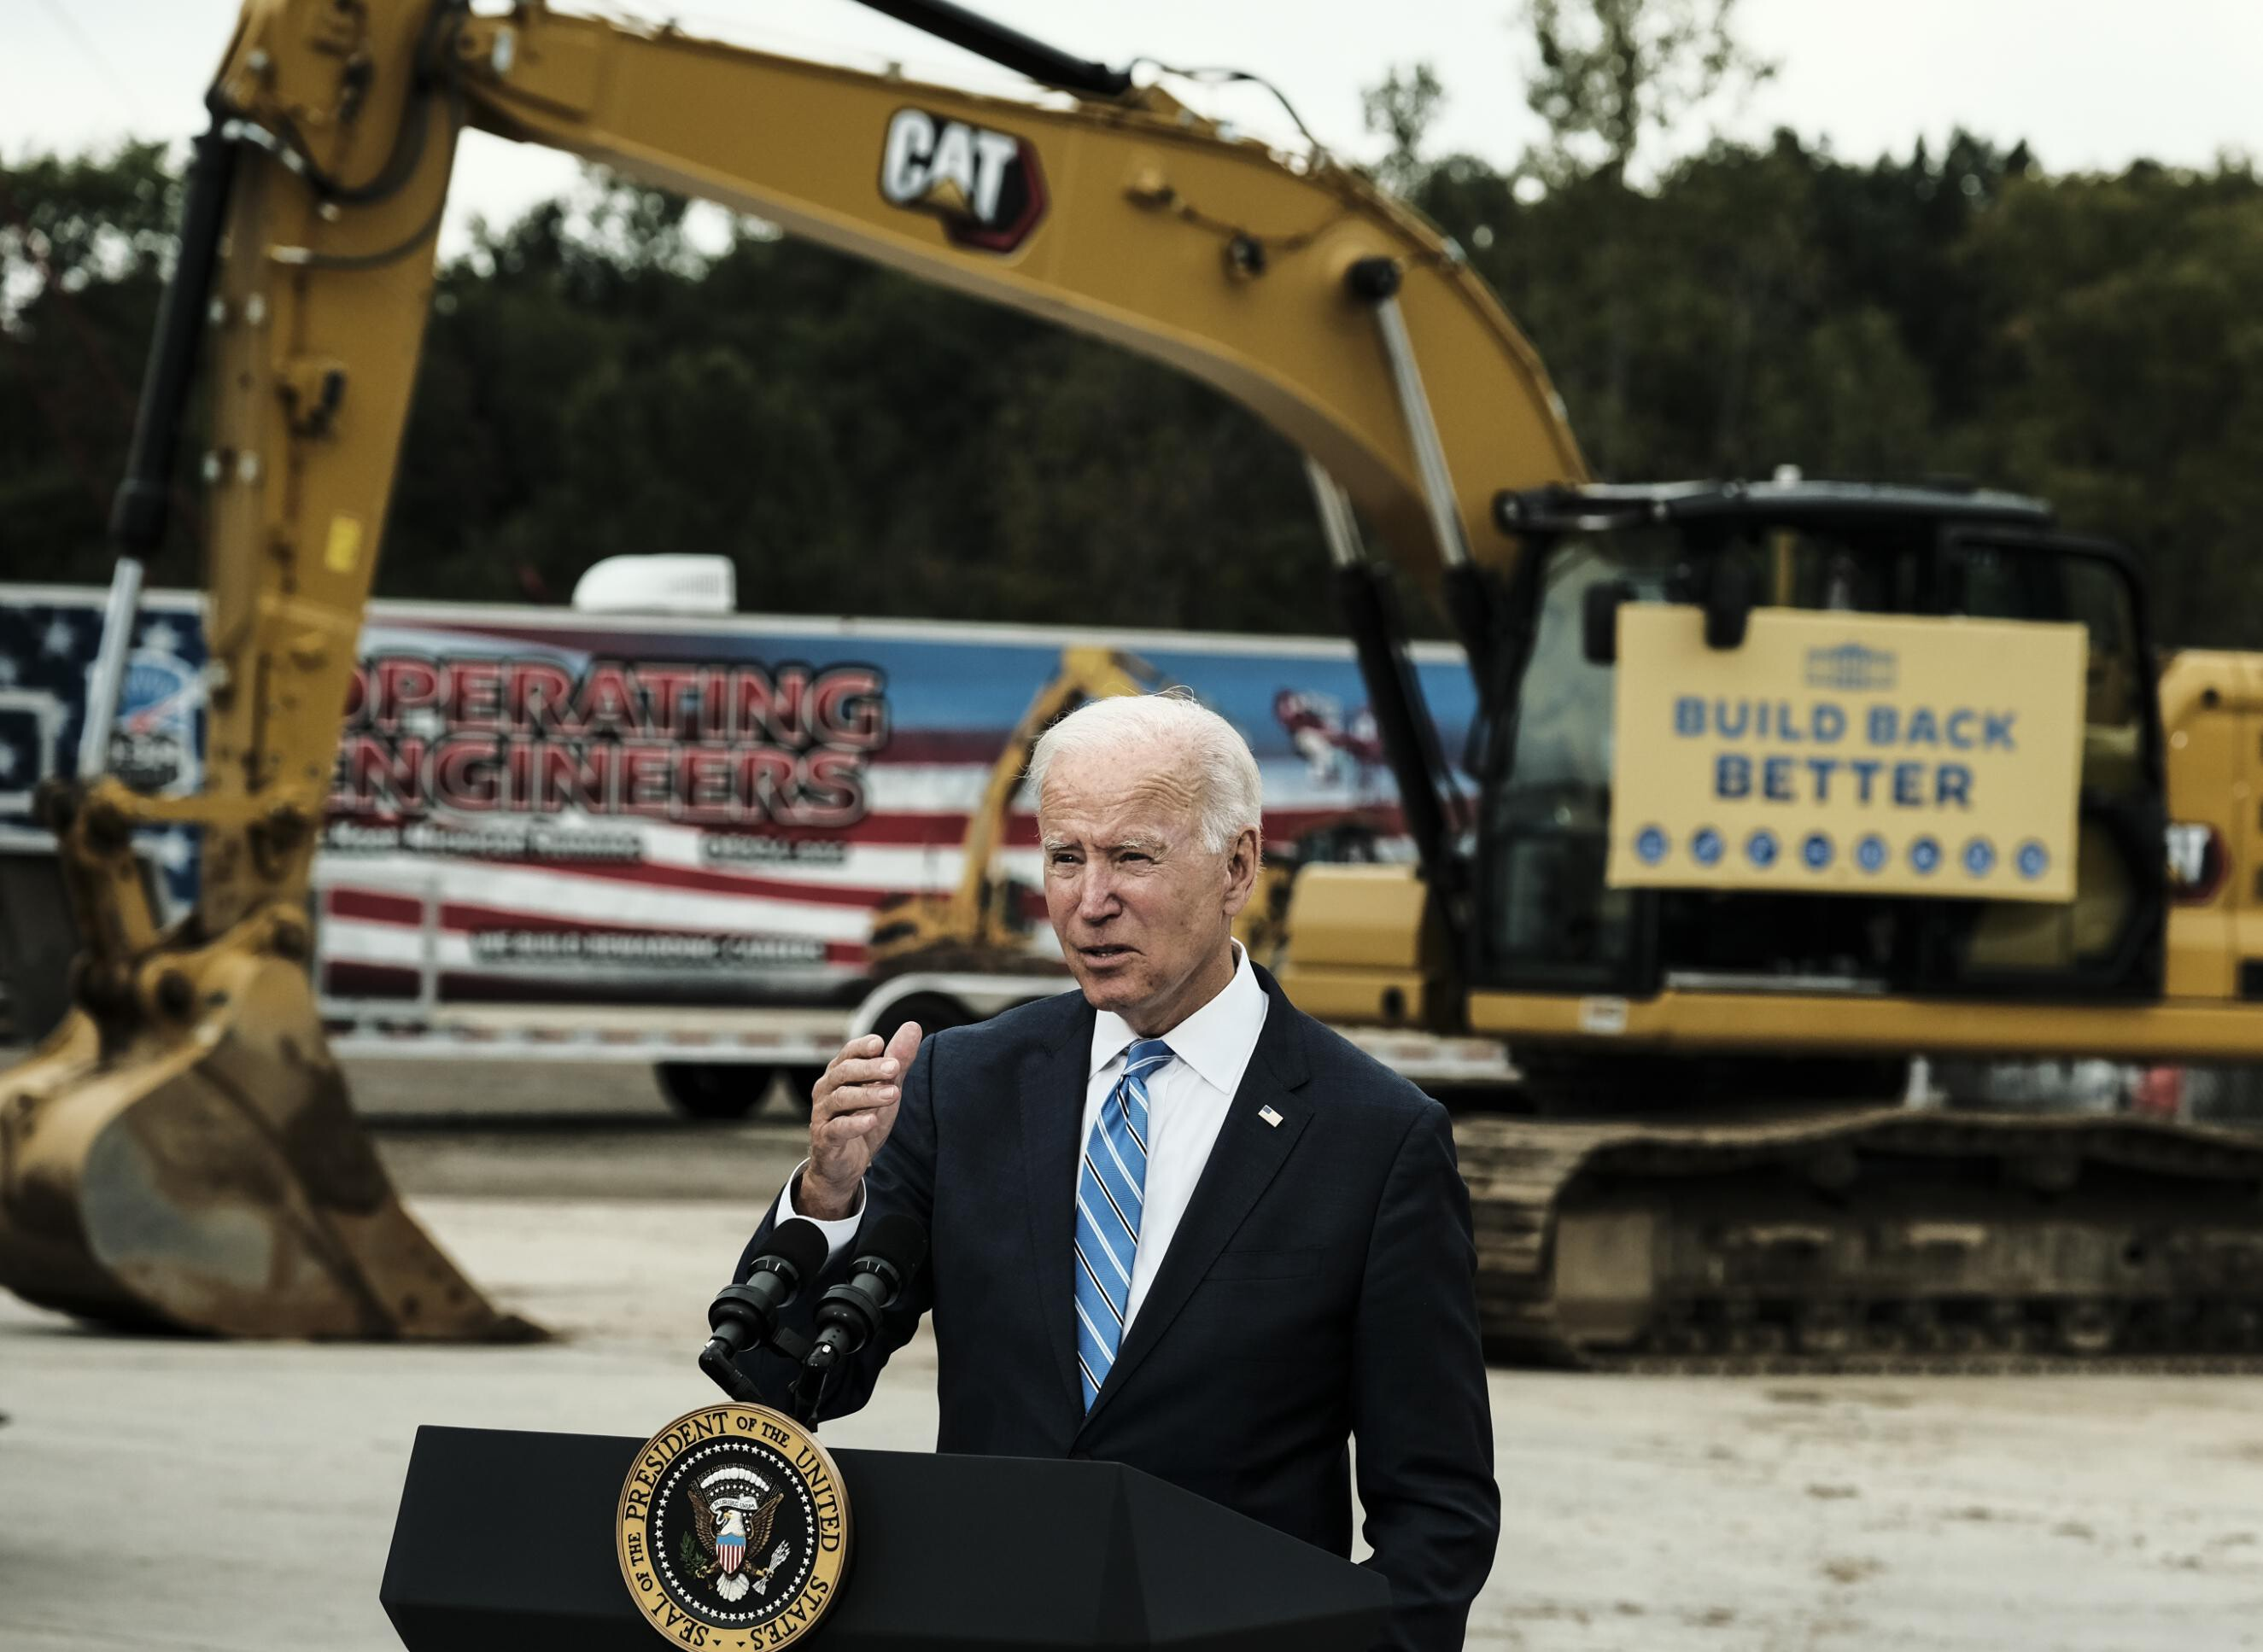 Biden ramps up pressure on Republicans to raise debt ceiling: 'The United States pays its bills'